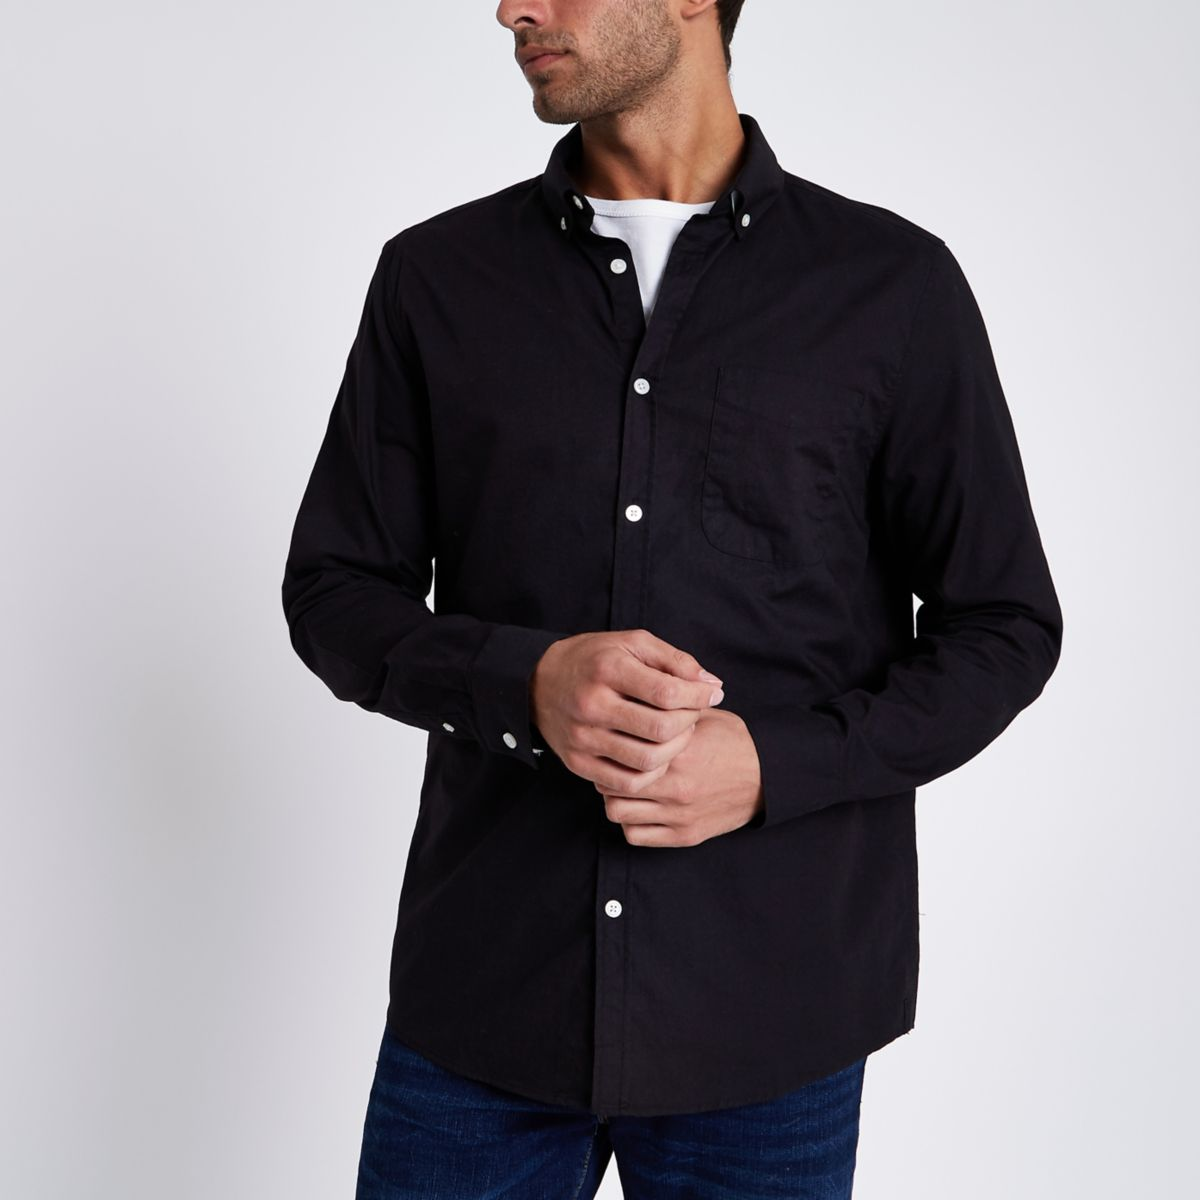 Black long sleeve button-down Oxford shirt